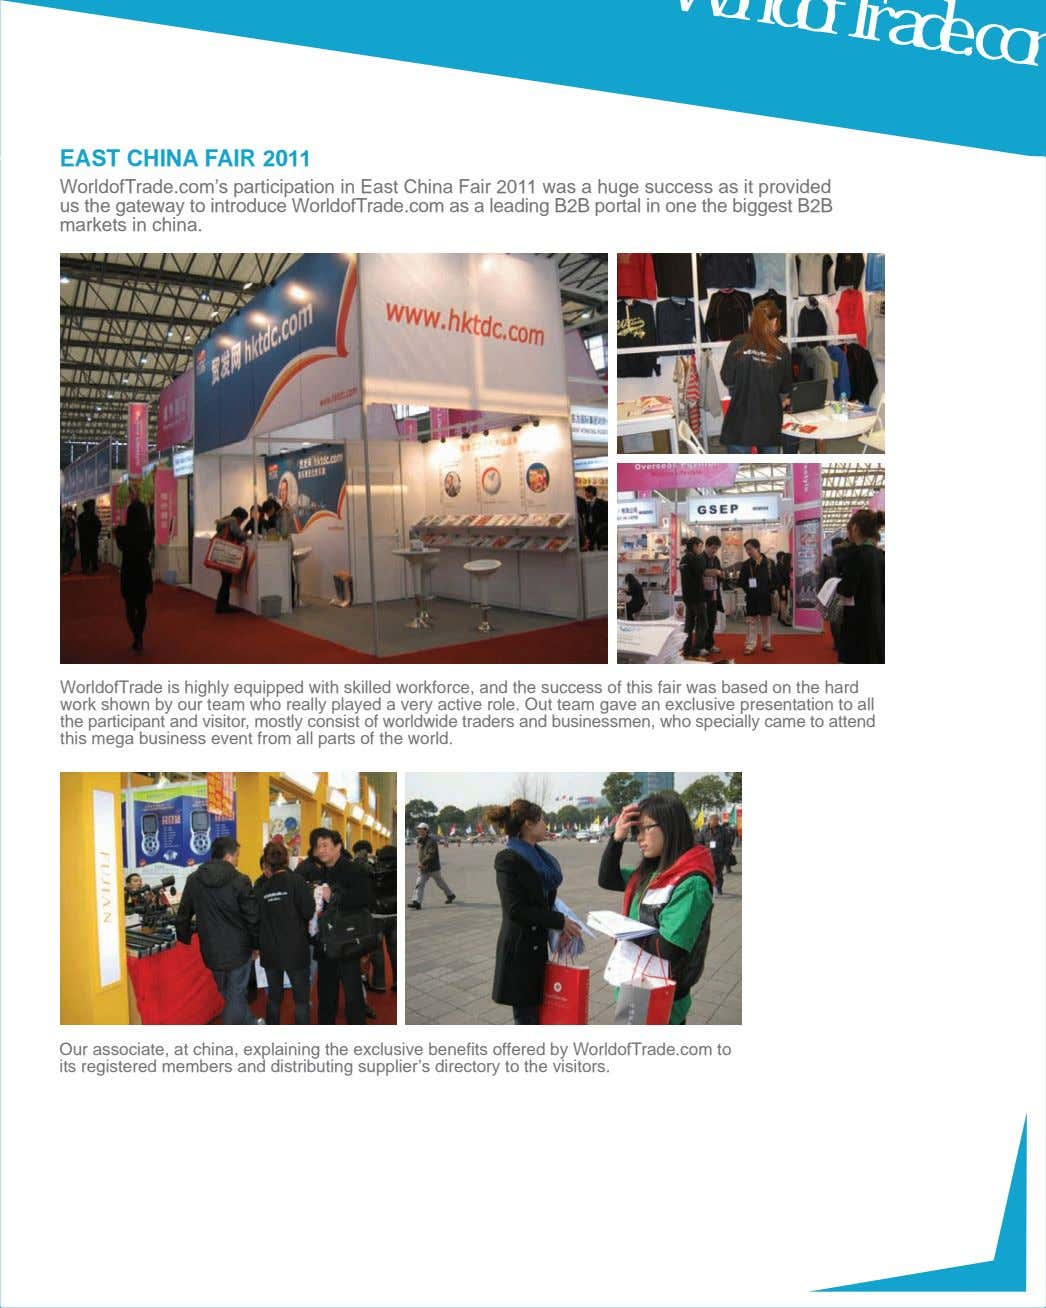 WorldofTrade is highly equipped with skilled workforce, and the success of this fair was based on